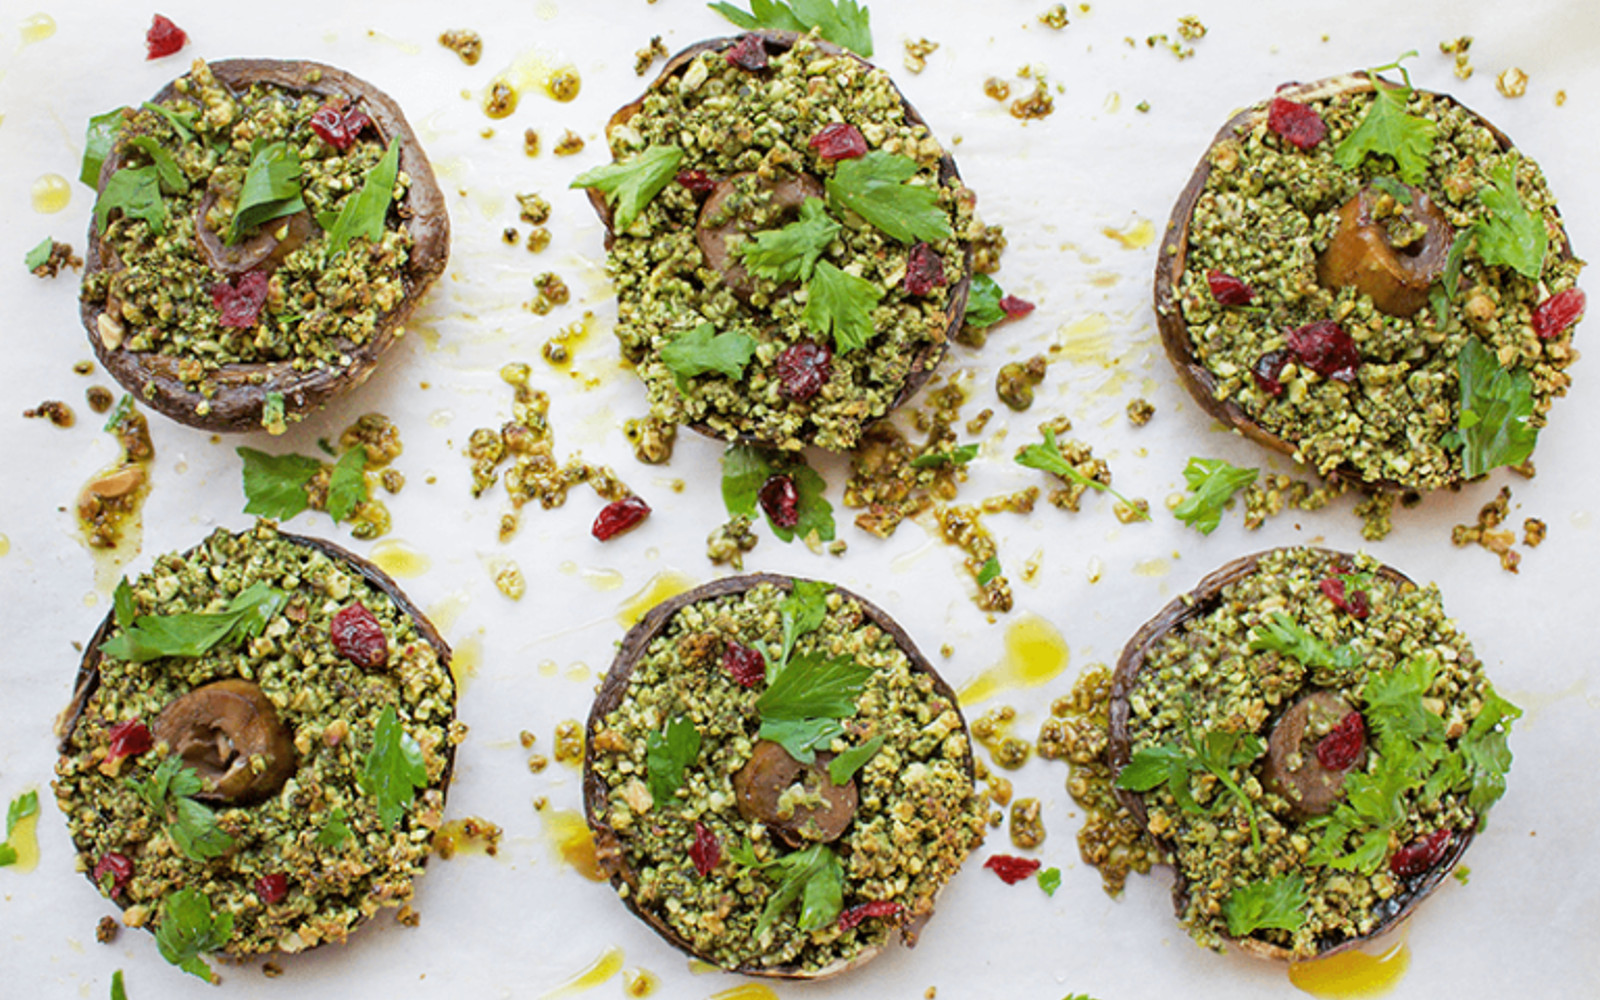 Vegan Grain-Free Almond and Herb-Stuffed Mushrooms